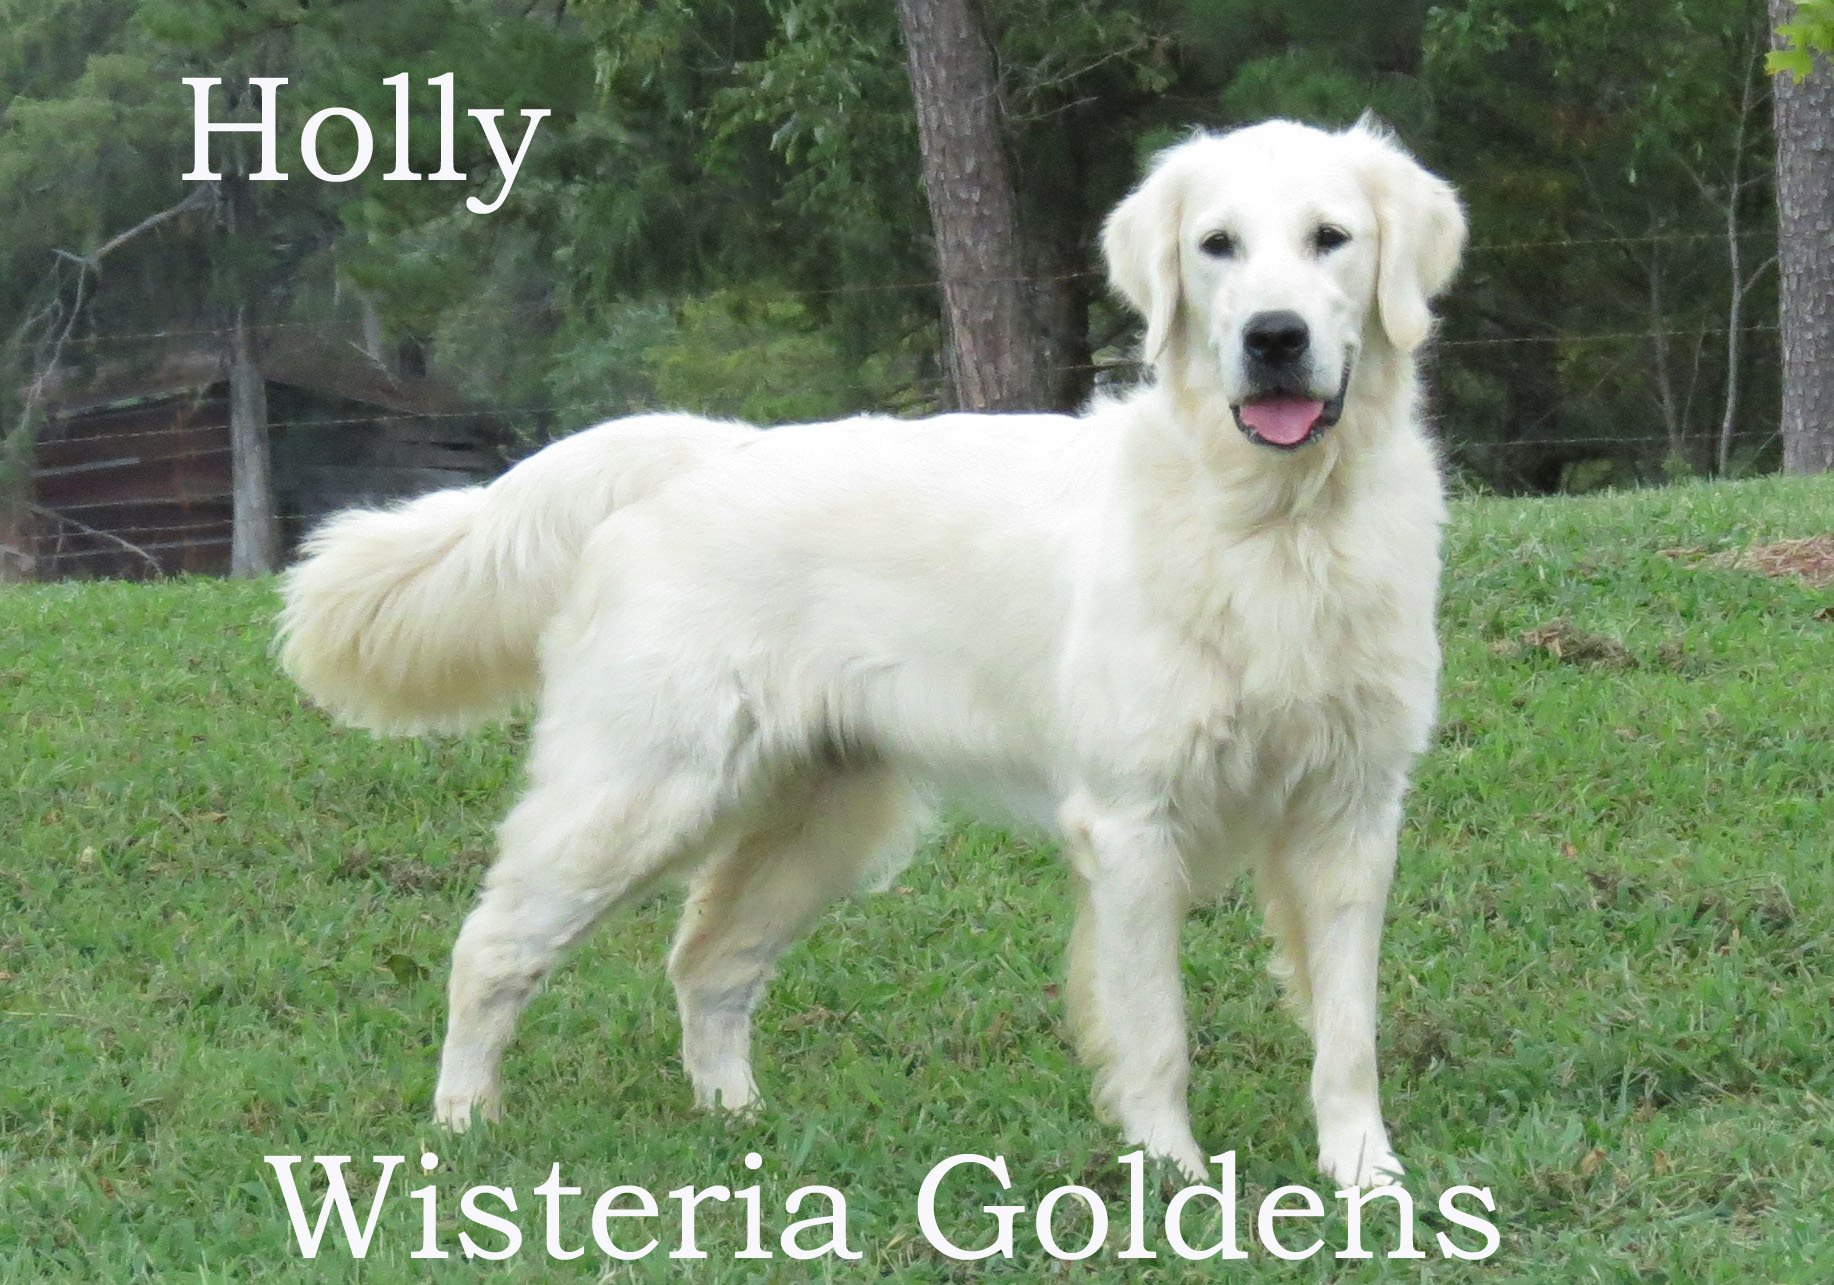 holly-full-english-creme-golden-retriever-wisteria-goldens_0004_1